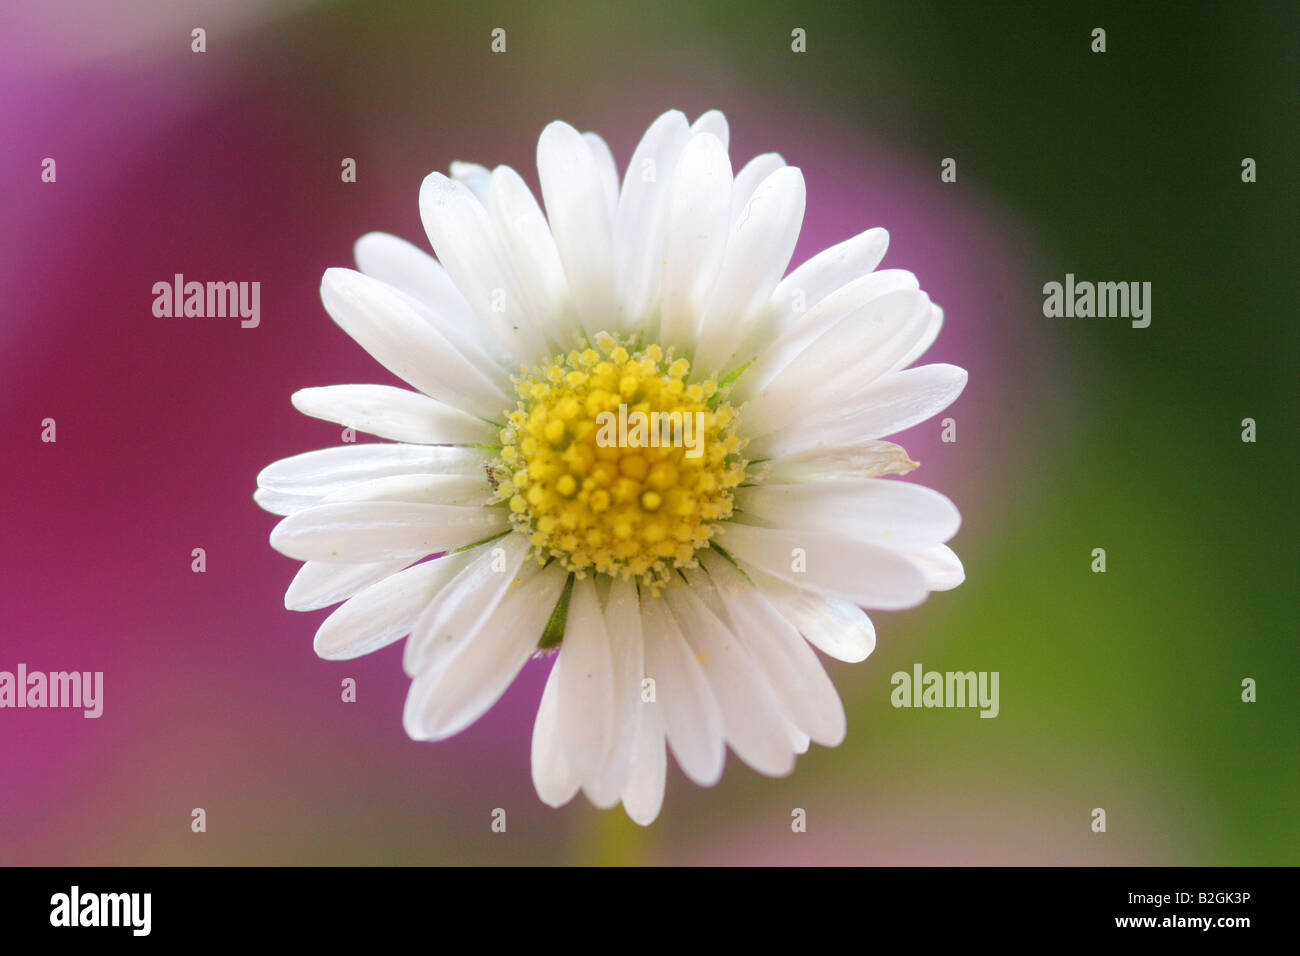 Lawn daisy Common daisy Bellis perennis english daisy bloom blossom still stills background backgrounds patterns - Stock Image